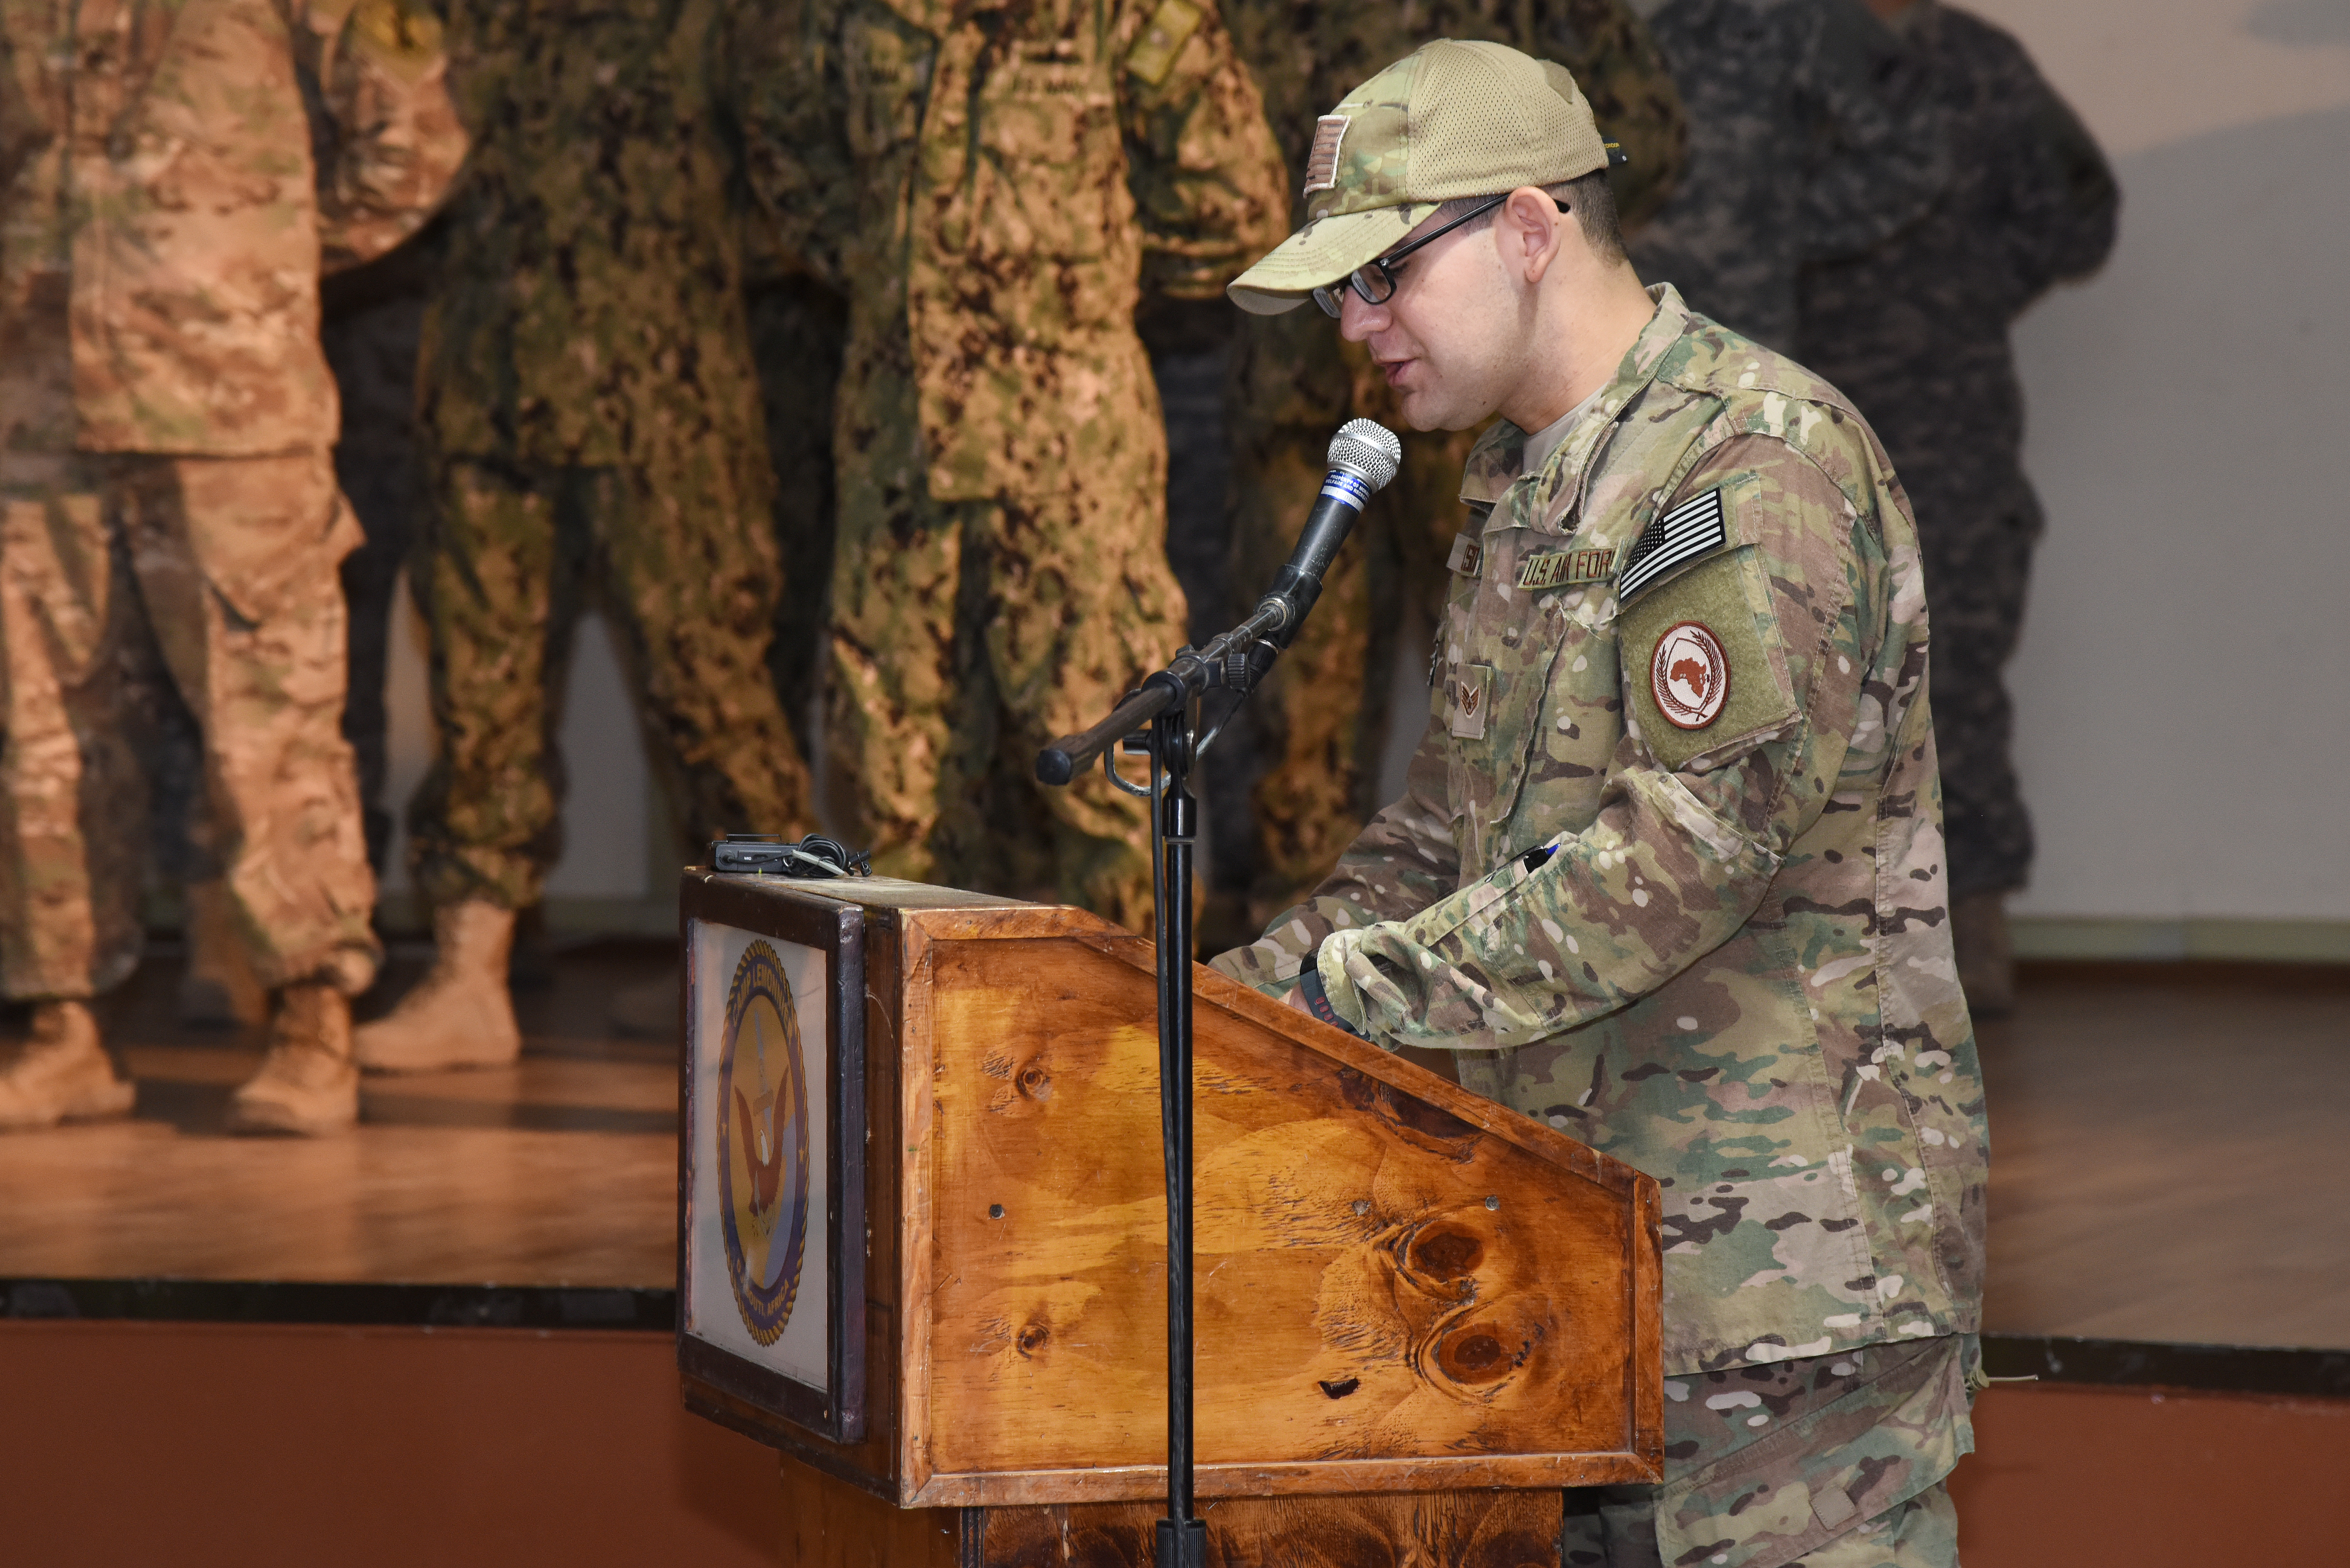 Staff Sgt. Nathan Maysonet, Combined Joint Task Force-Horn of Africa public affairs photojournalist, emcees a relinquishment of authority ceremony at Camp Lemonnier, Djibouti, June 19, 2015.  (U.S. Air Force photo by Staff Sgt. Maria Bowman)